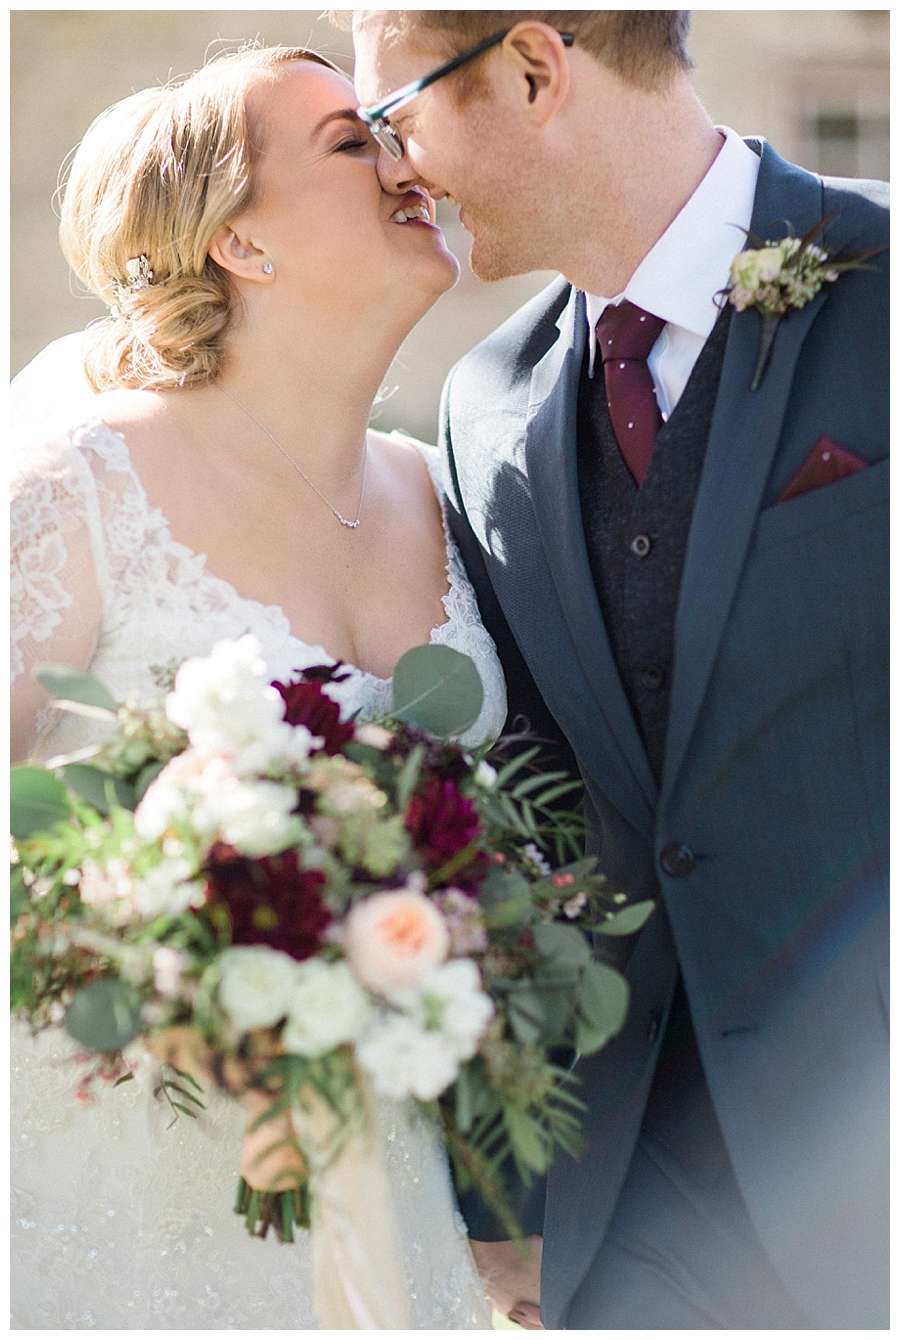 fine art wedding photography at Over the Vines in Madison, Wisconsin